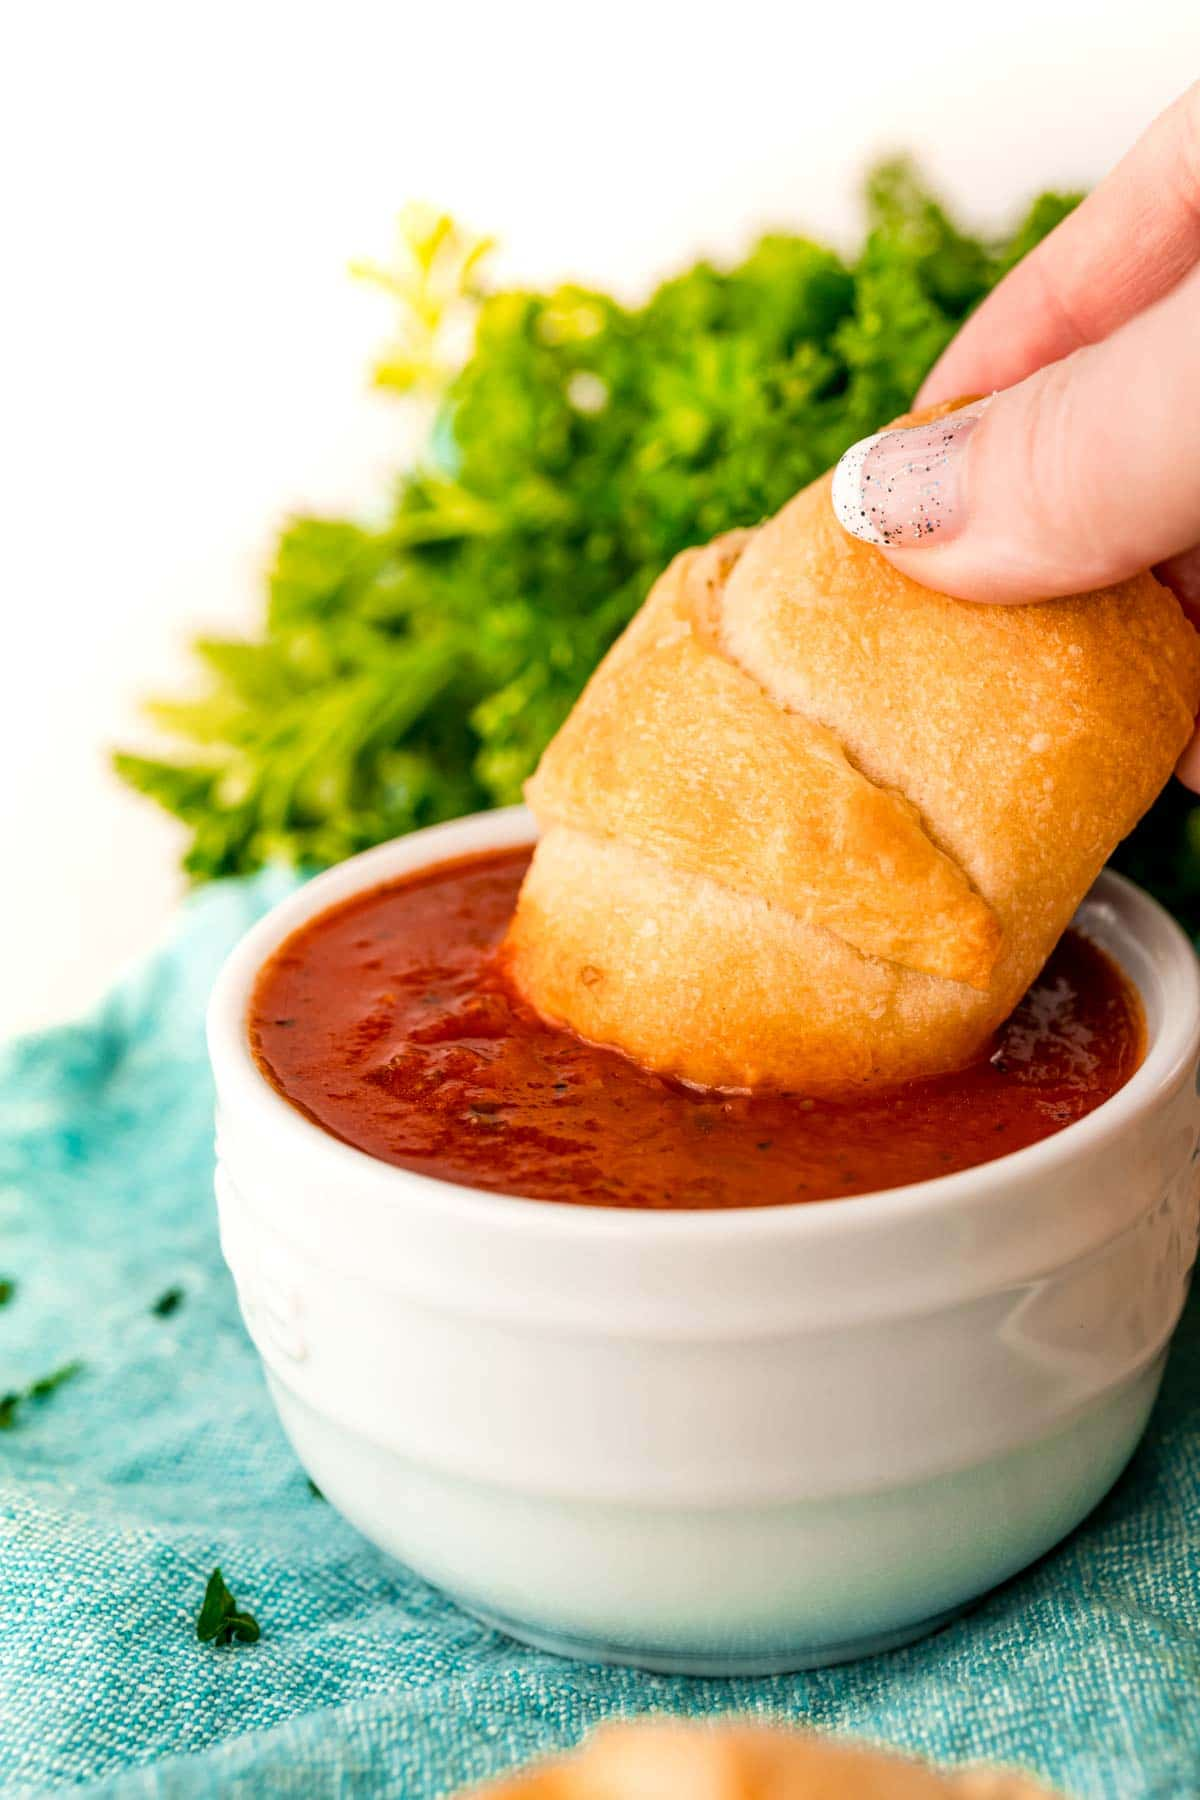 Pizza roll up being dipped in pizza sauce